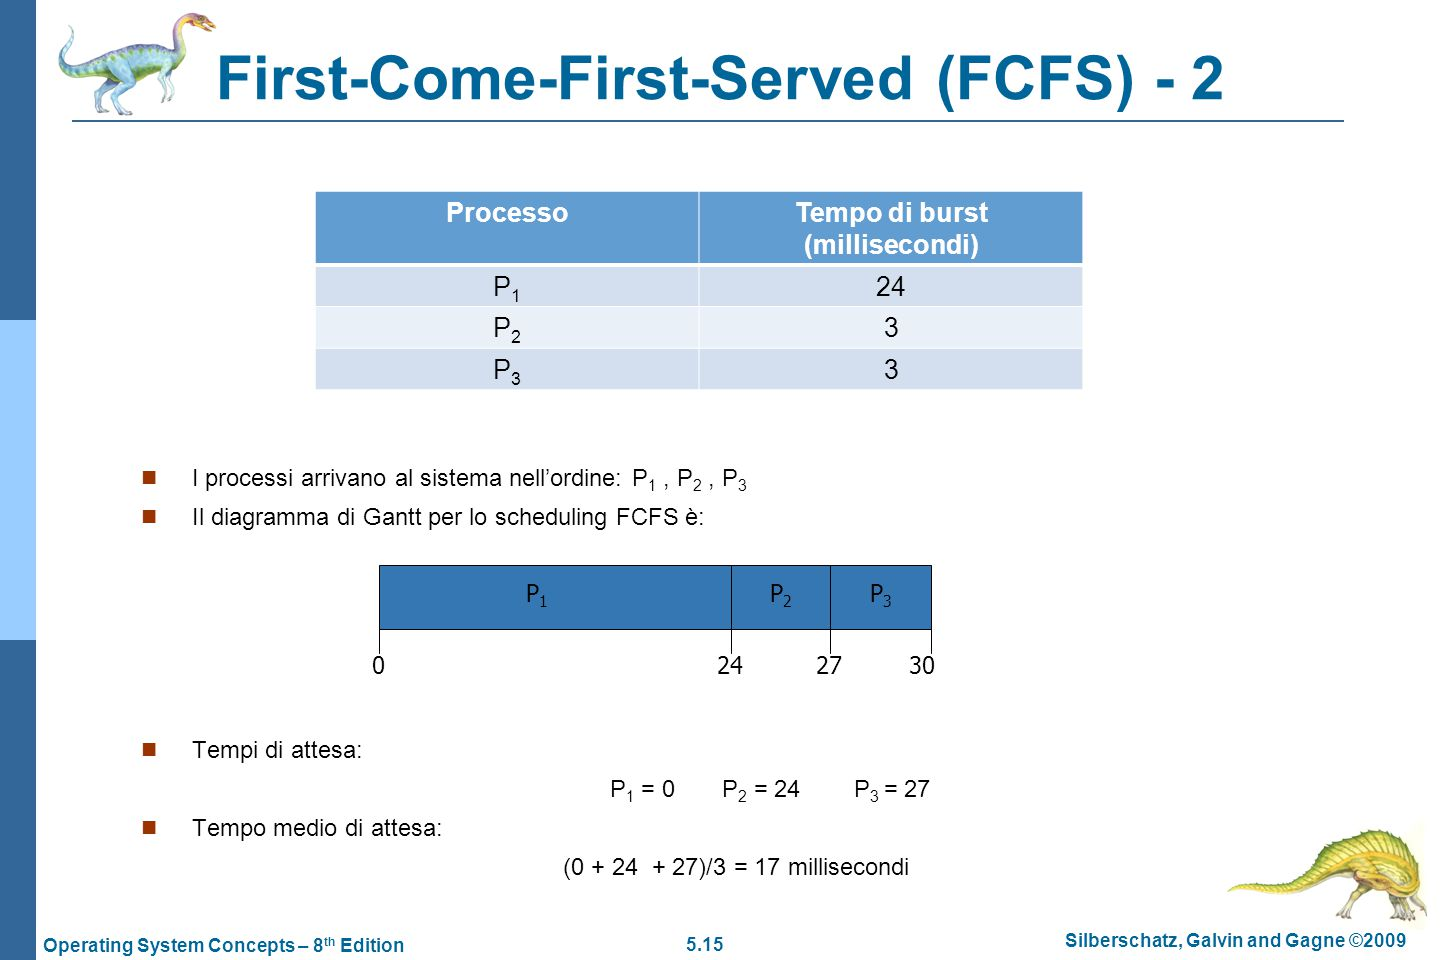 First-Come-First-Served (FCFS) - 2